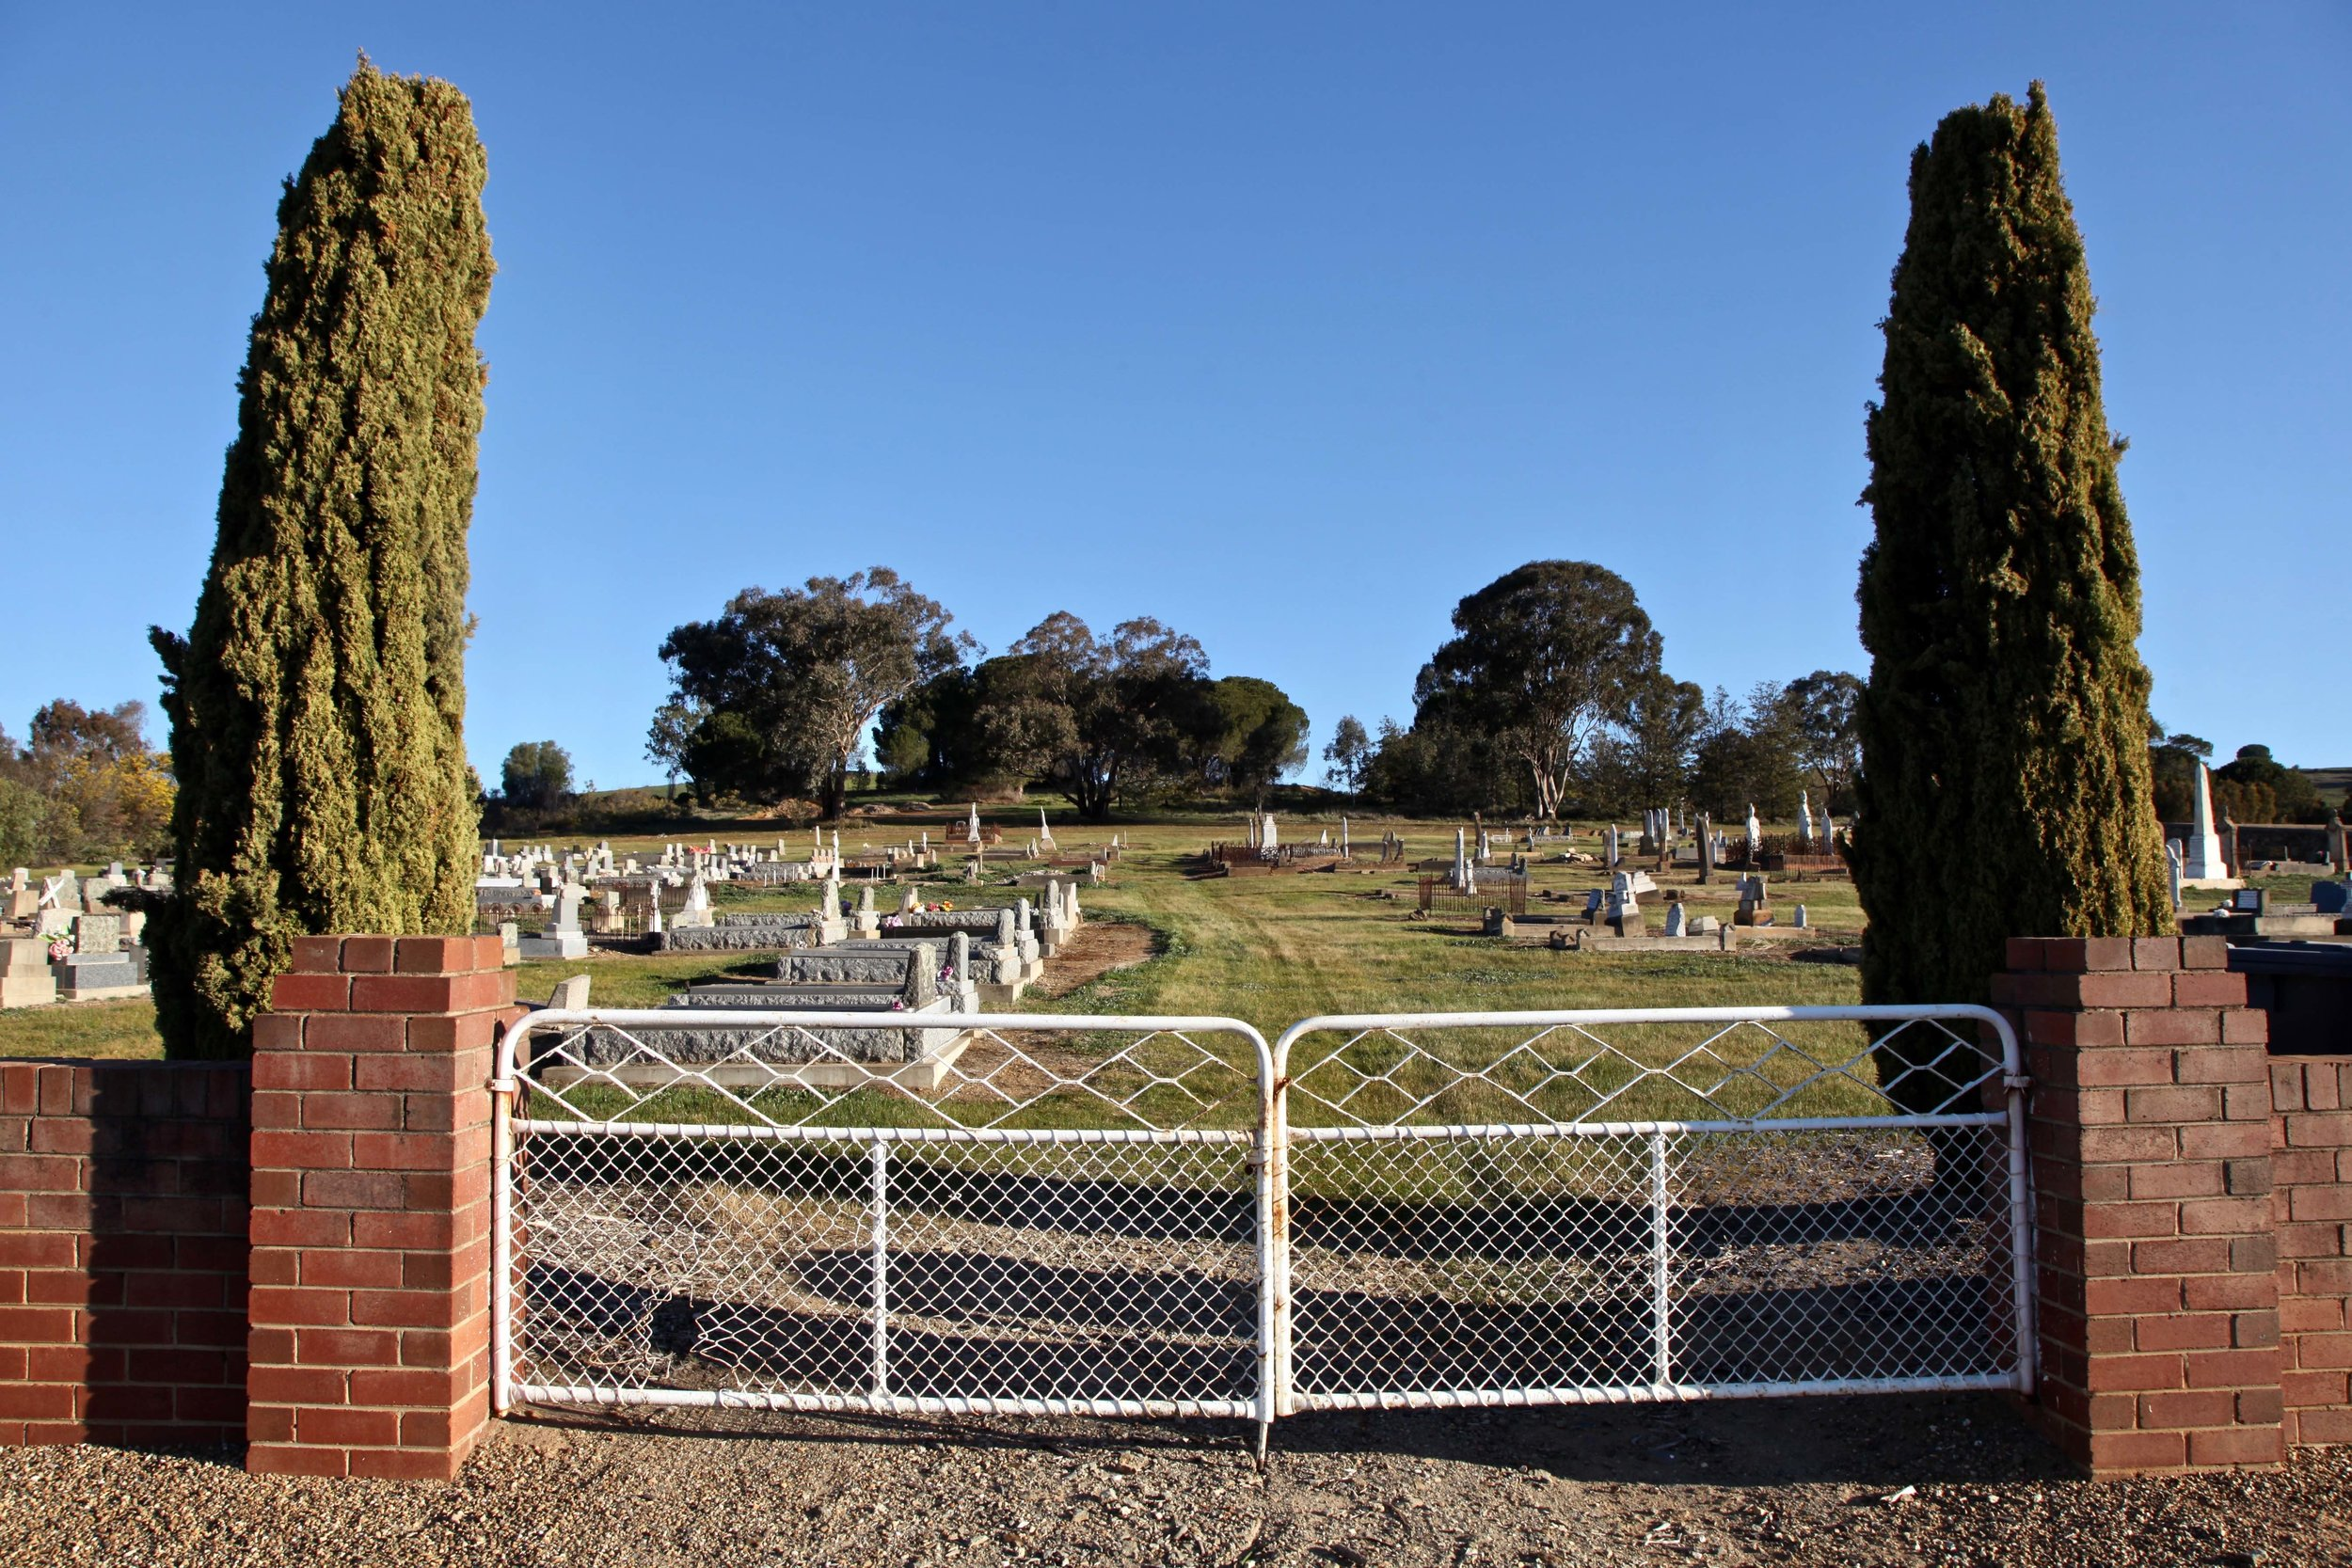 North Gundagai Cemetery is located a couple of kilometres out of town on William St.